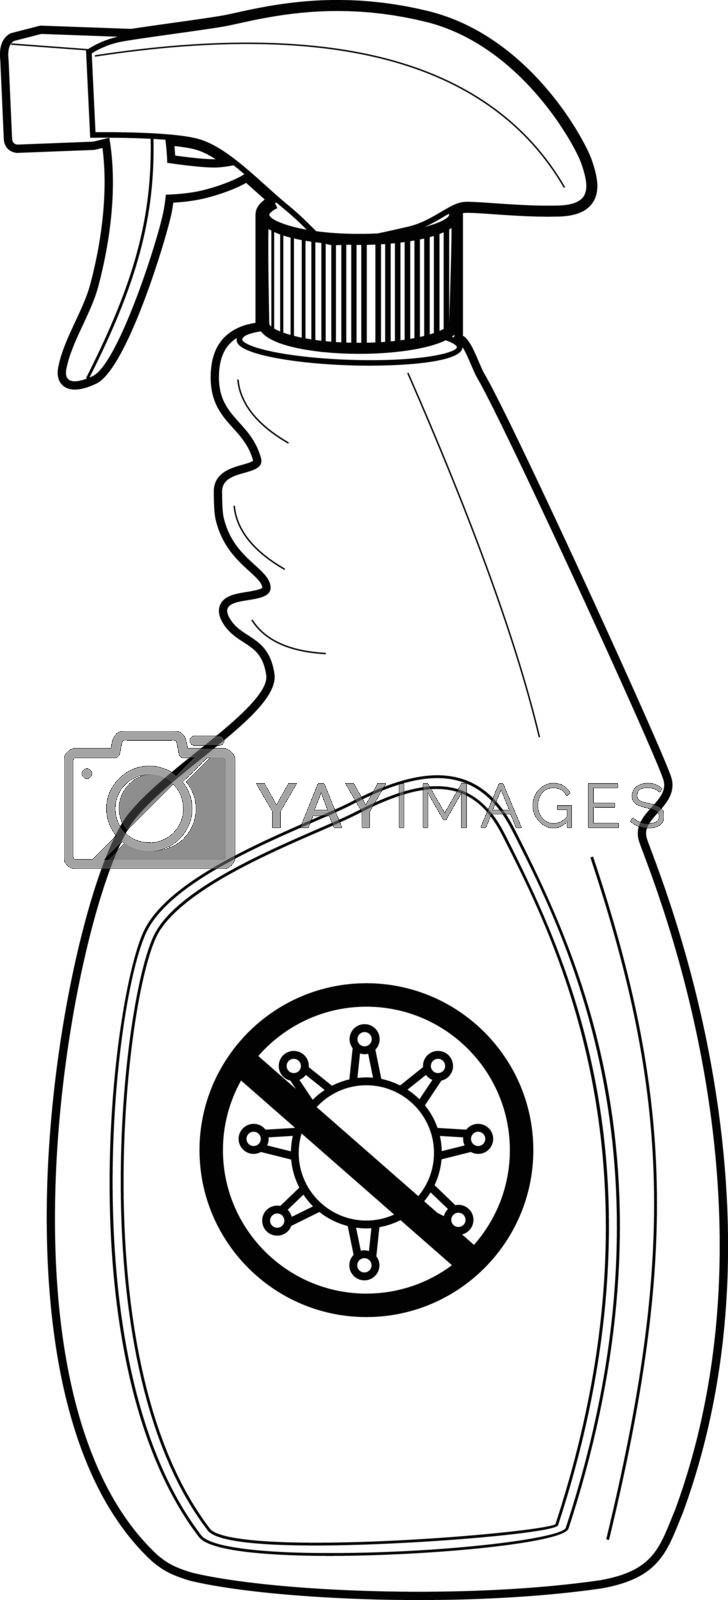 Line drawing style illustration of disinfectant spray bottle with stop pandemic virus sign viewed from side on isolated white background.